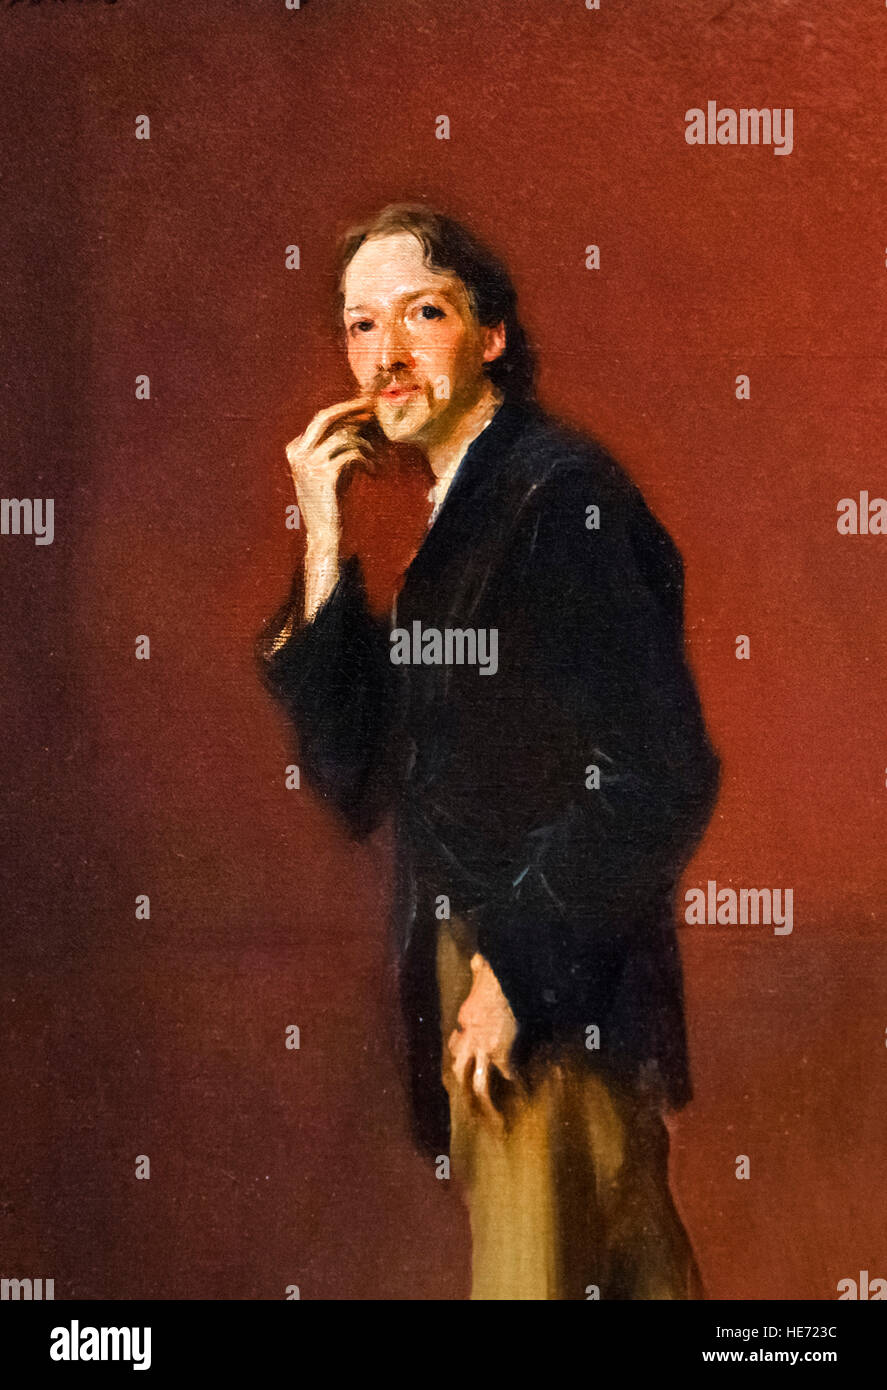 "Robert Louis Stevenson by John Singer Sargent, oil on canvas, 1885. This is a detail of a larger painting, ""Robert Stock Photo"